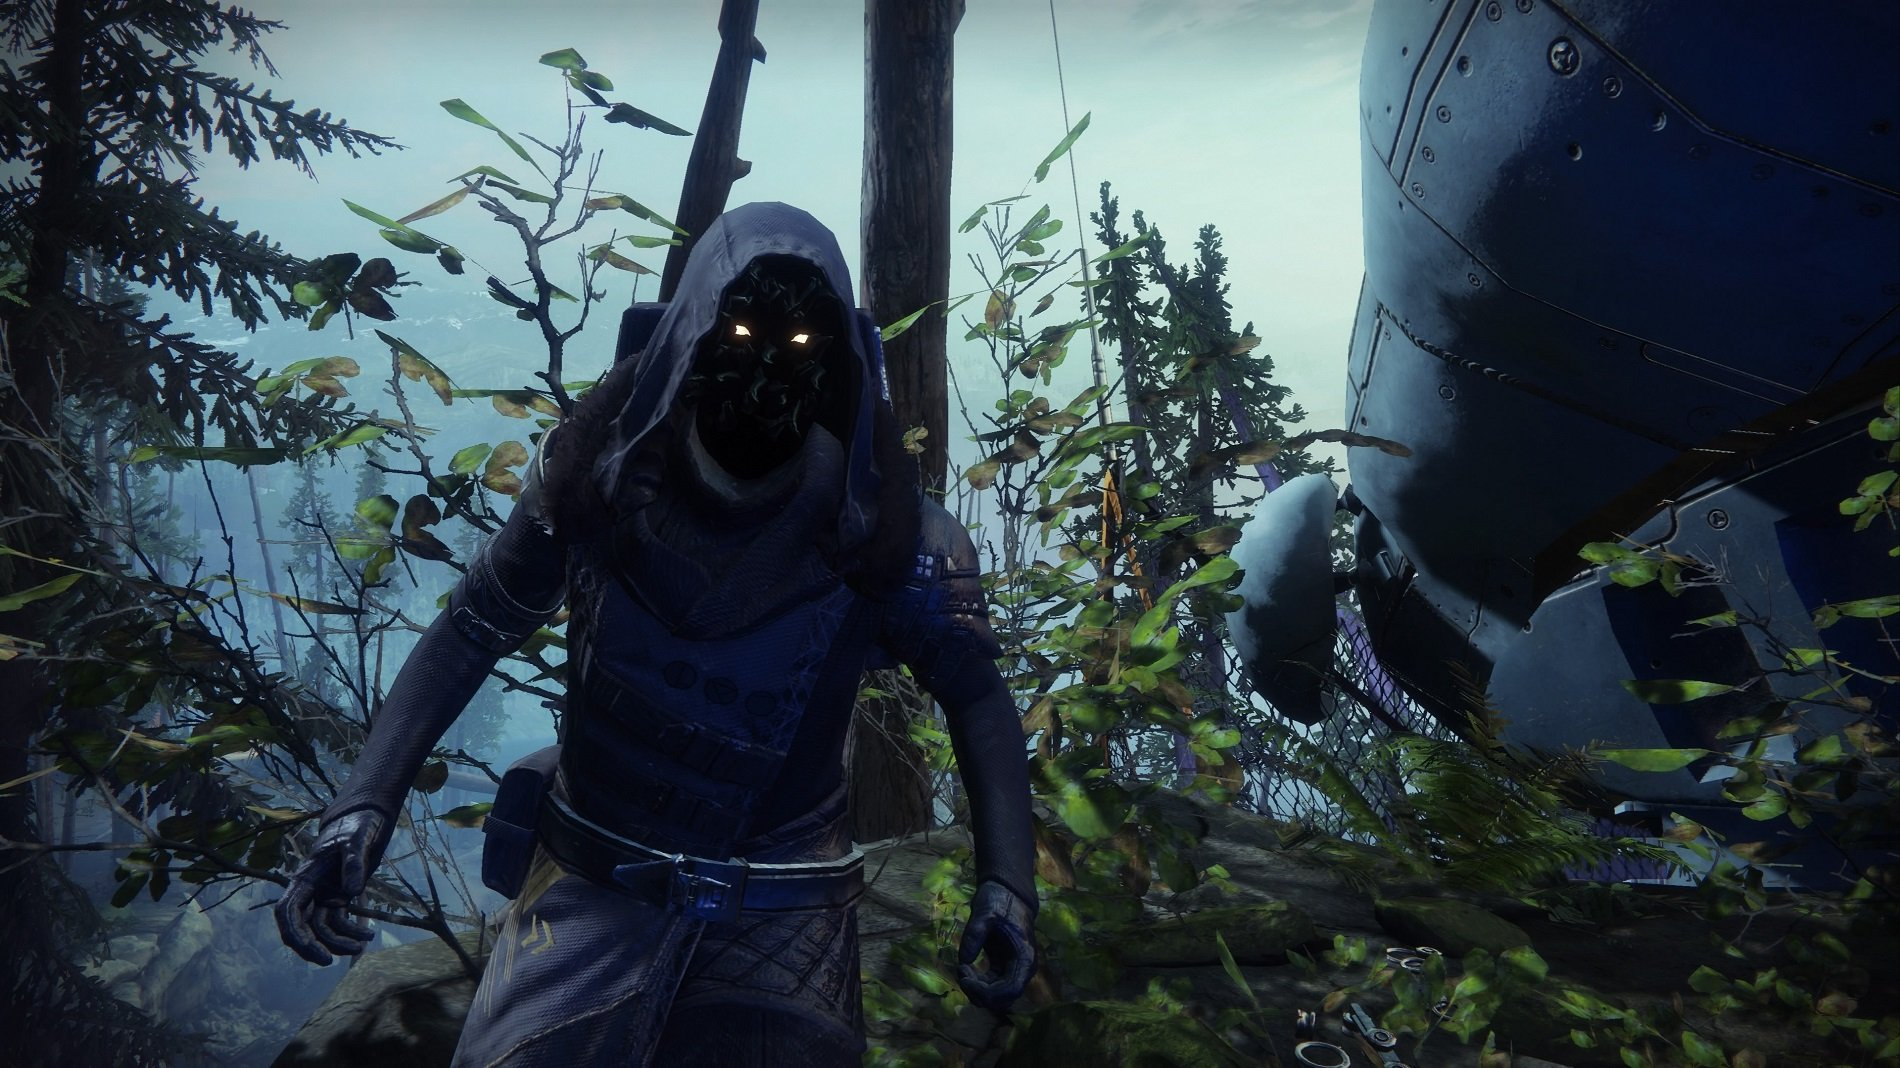 Where to find Xur in Destiny 2 - March 20, 2020